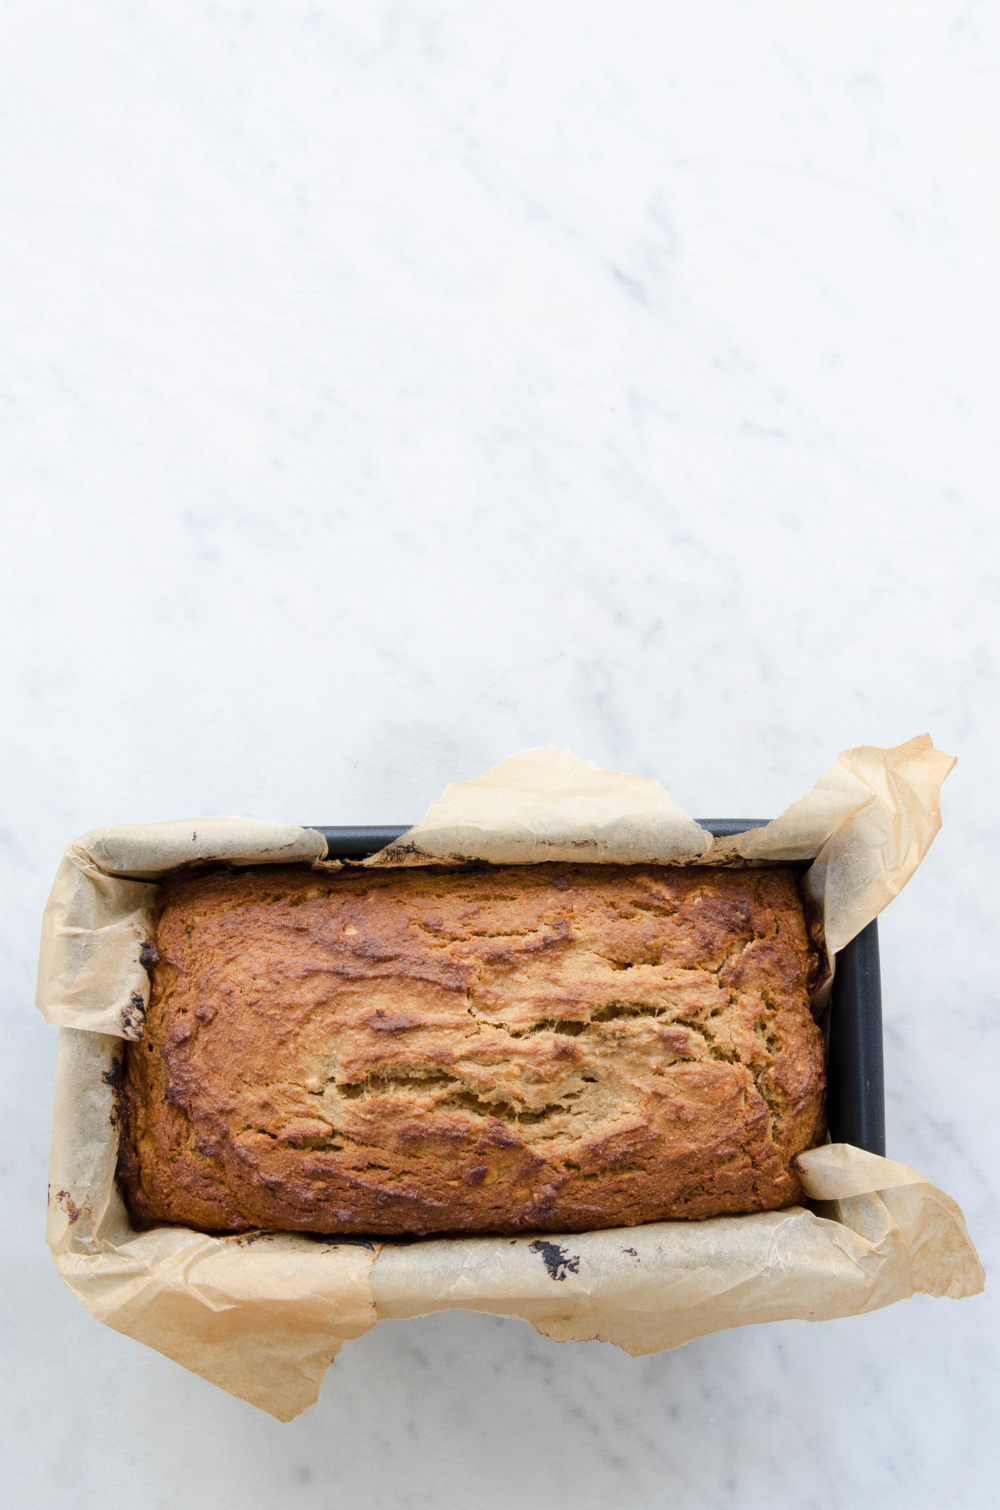 Peanut butter banana bread live local gluten free peanut butter banana bread recipe by eat real food forumfinder Image collections